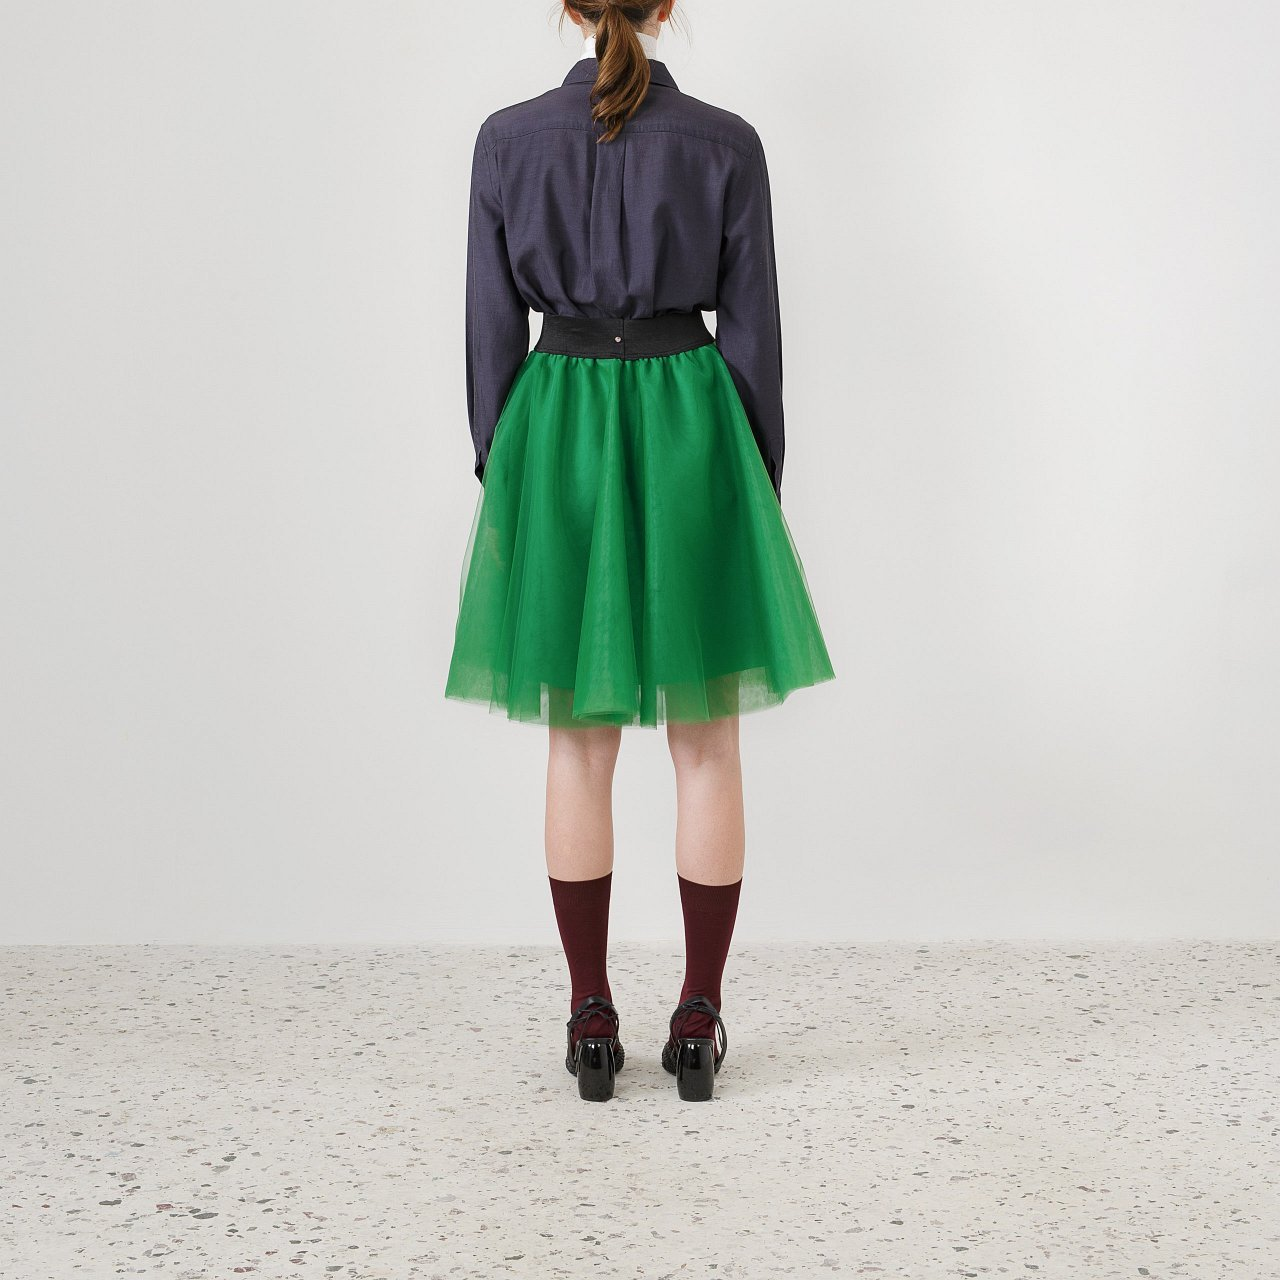 Product preview: Tulle Tutu Skirt Green Short